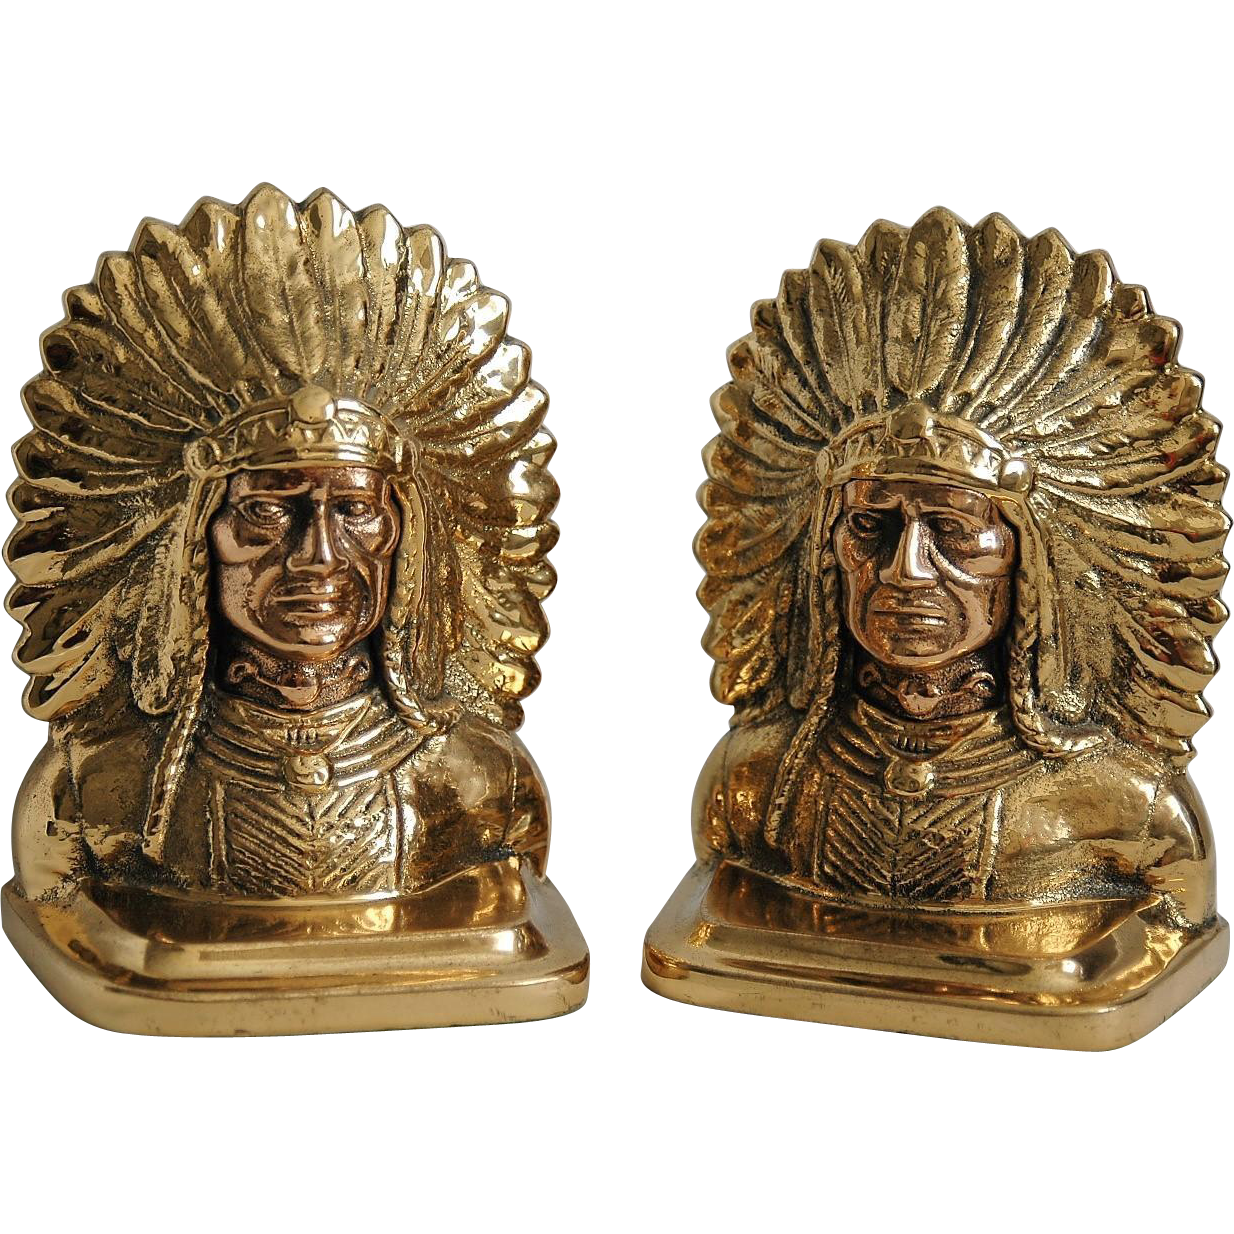 Vintage cast brass copper bookends american indian chief from vrantiques on ruby lane - Antique brass bookends ...